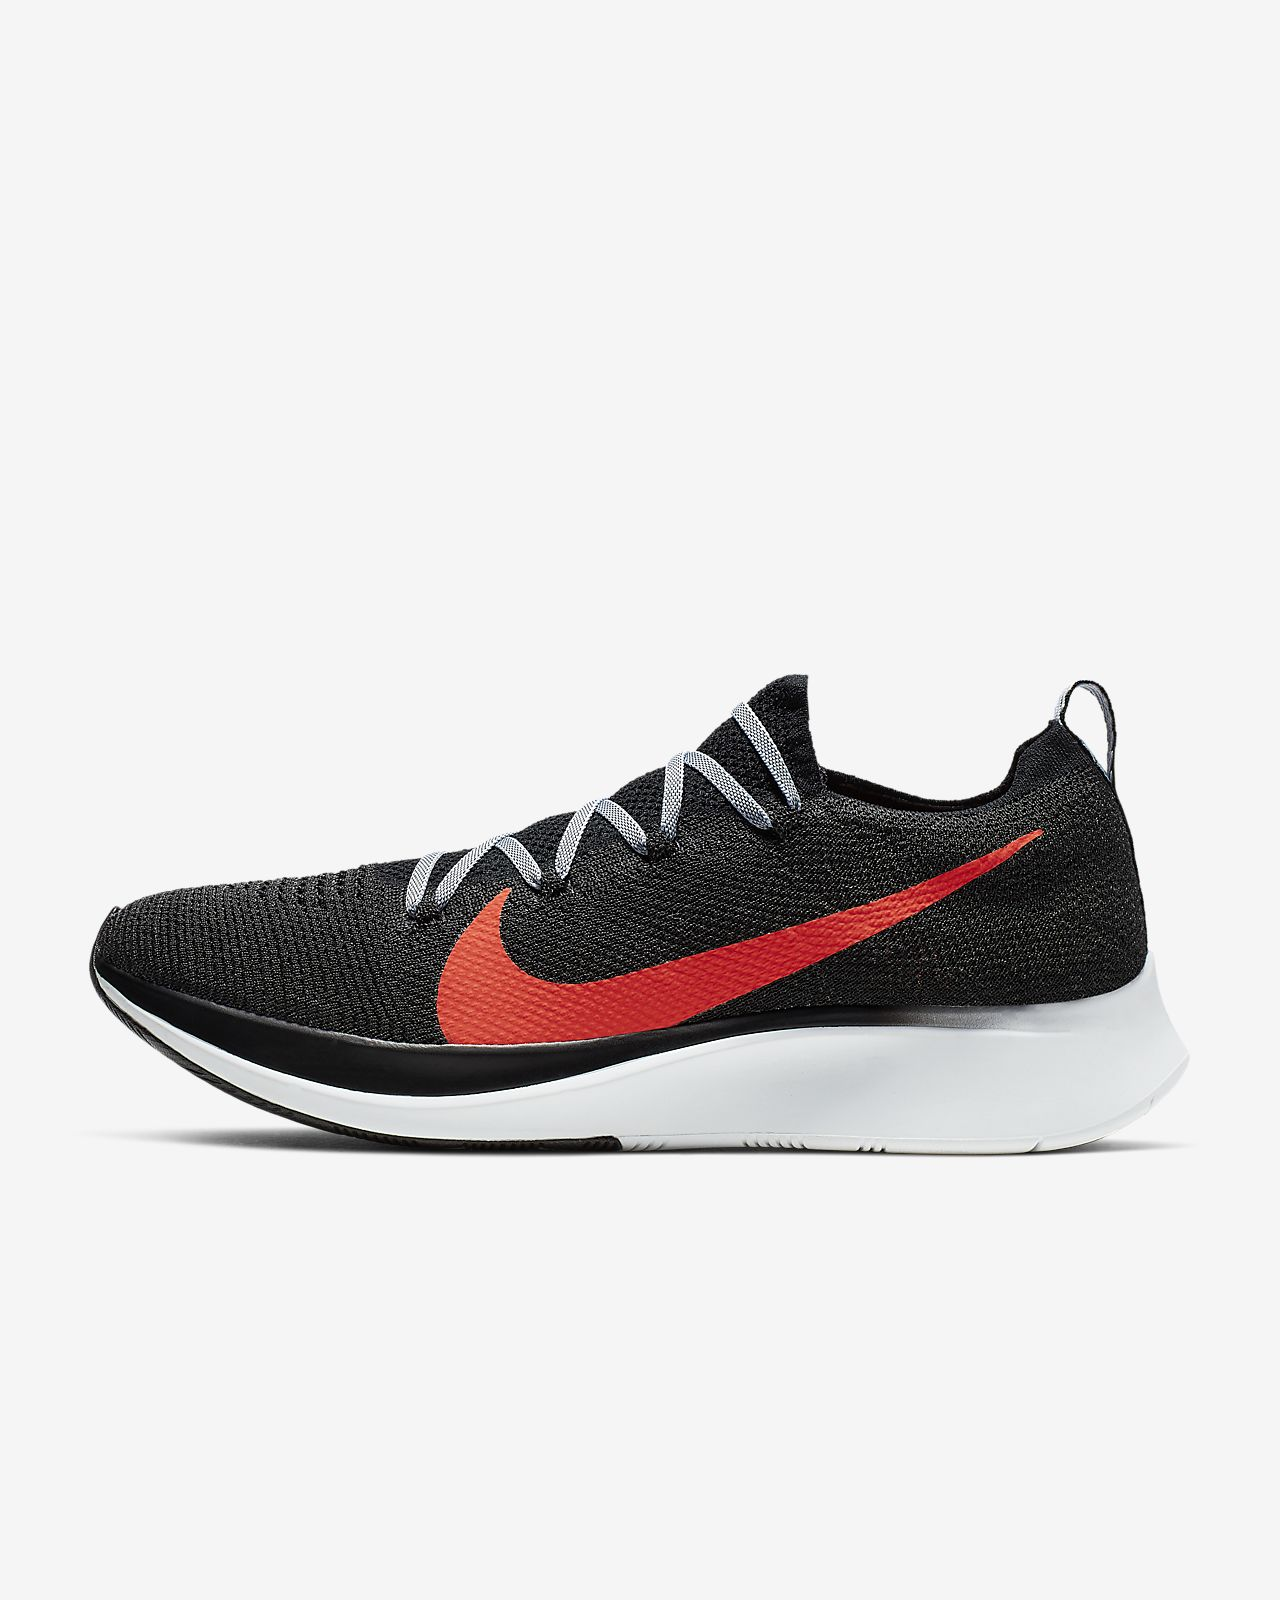 separation shoes c563e 0f6e6 ... Nike Zoom Fly Flyknit Men s Running Shoe